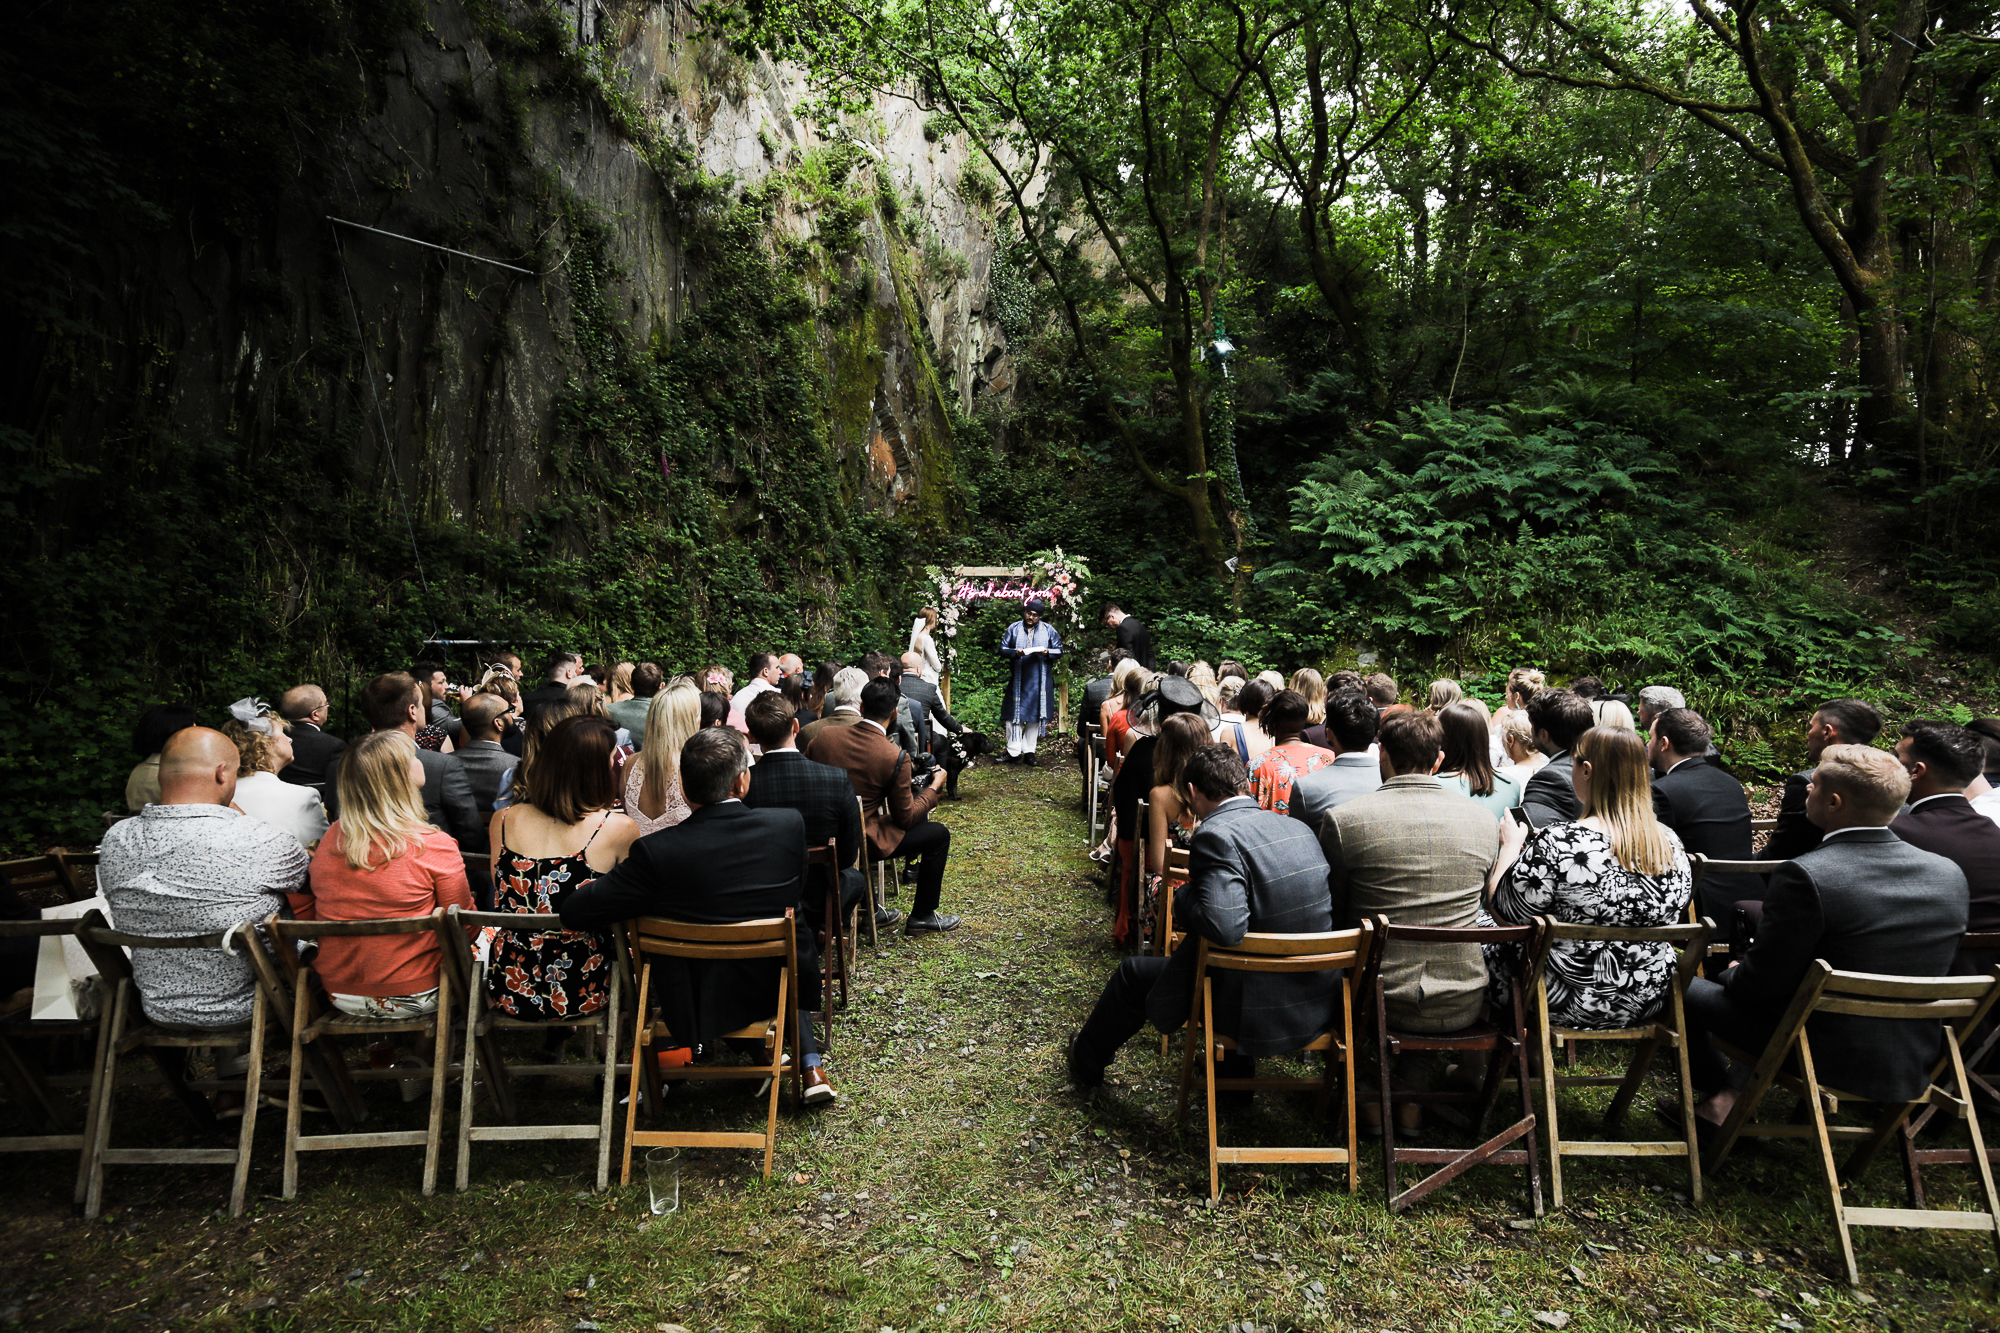 FFORESTWEDDINGS.CO.UK, CARDIGAN, WALES